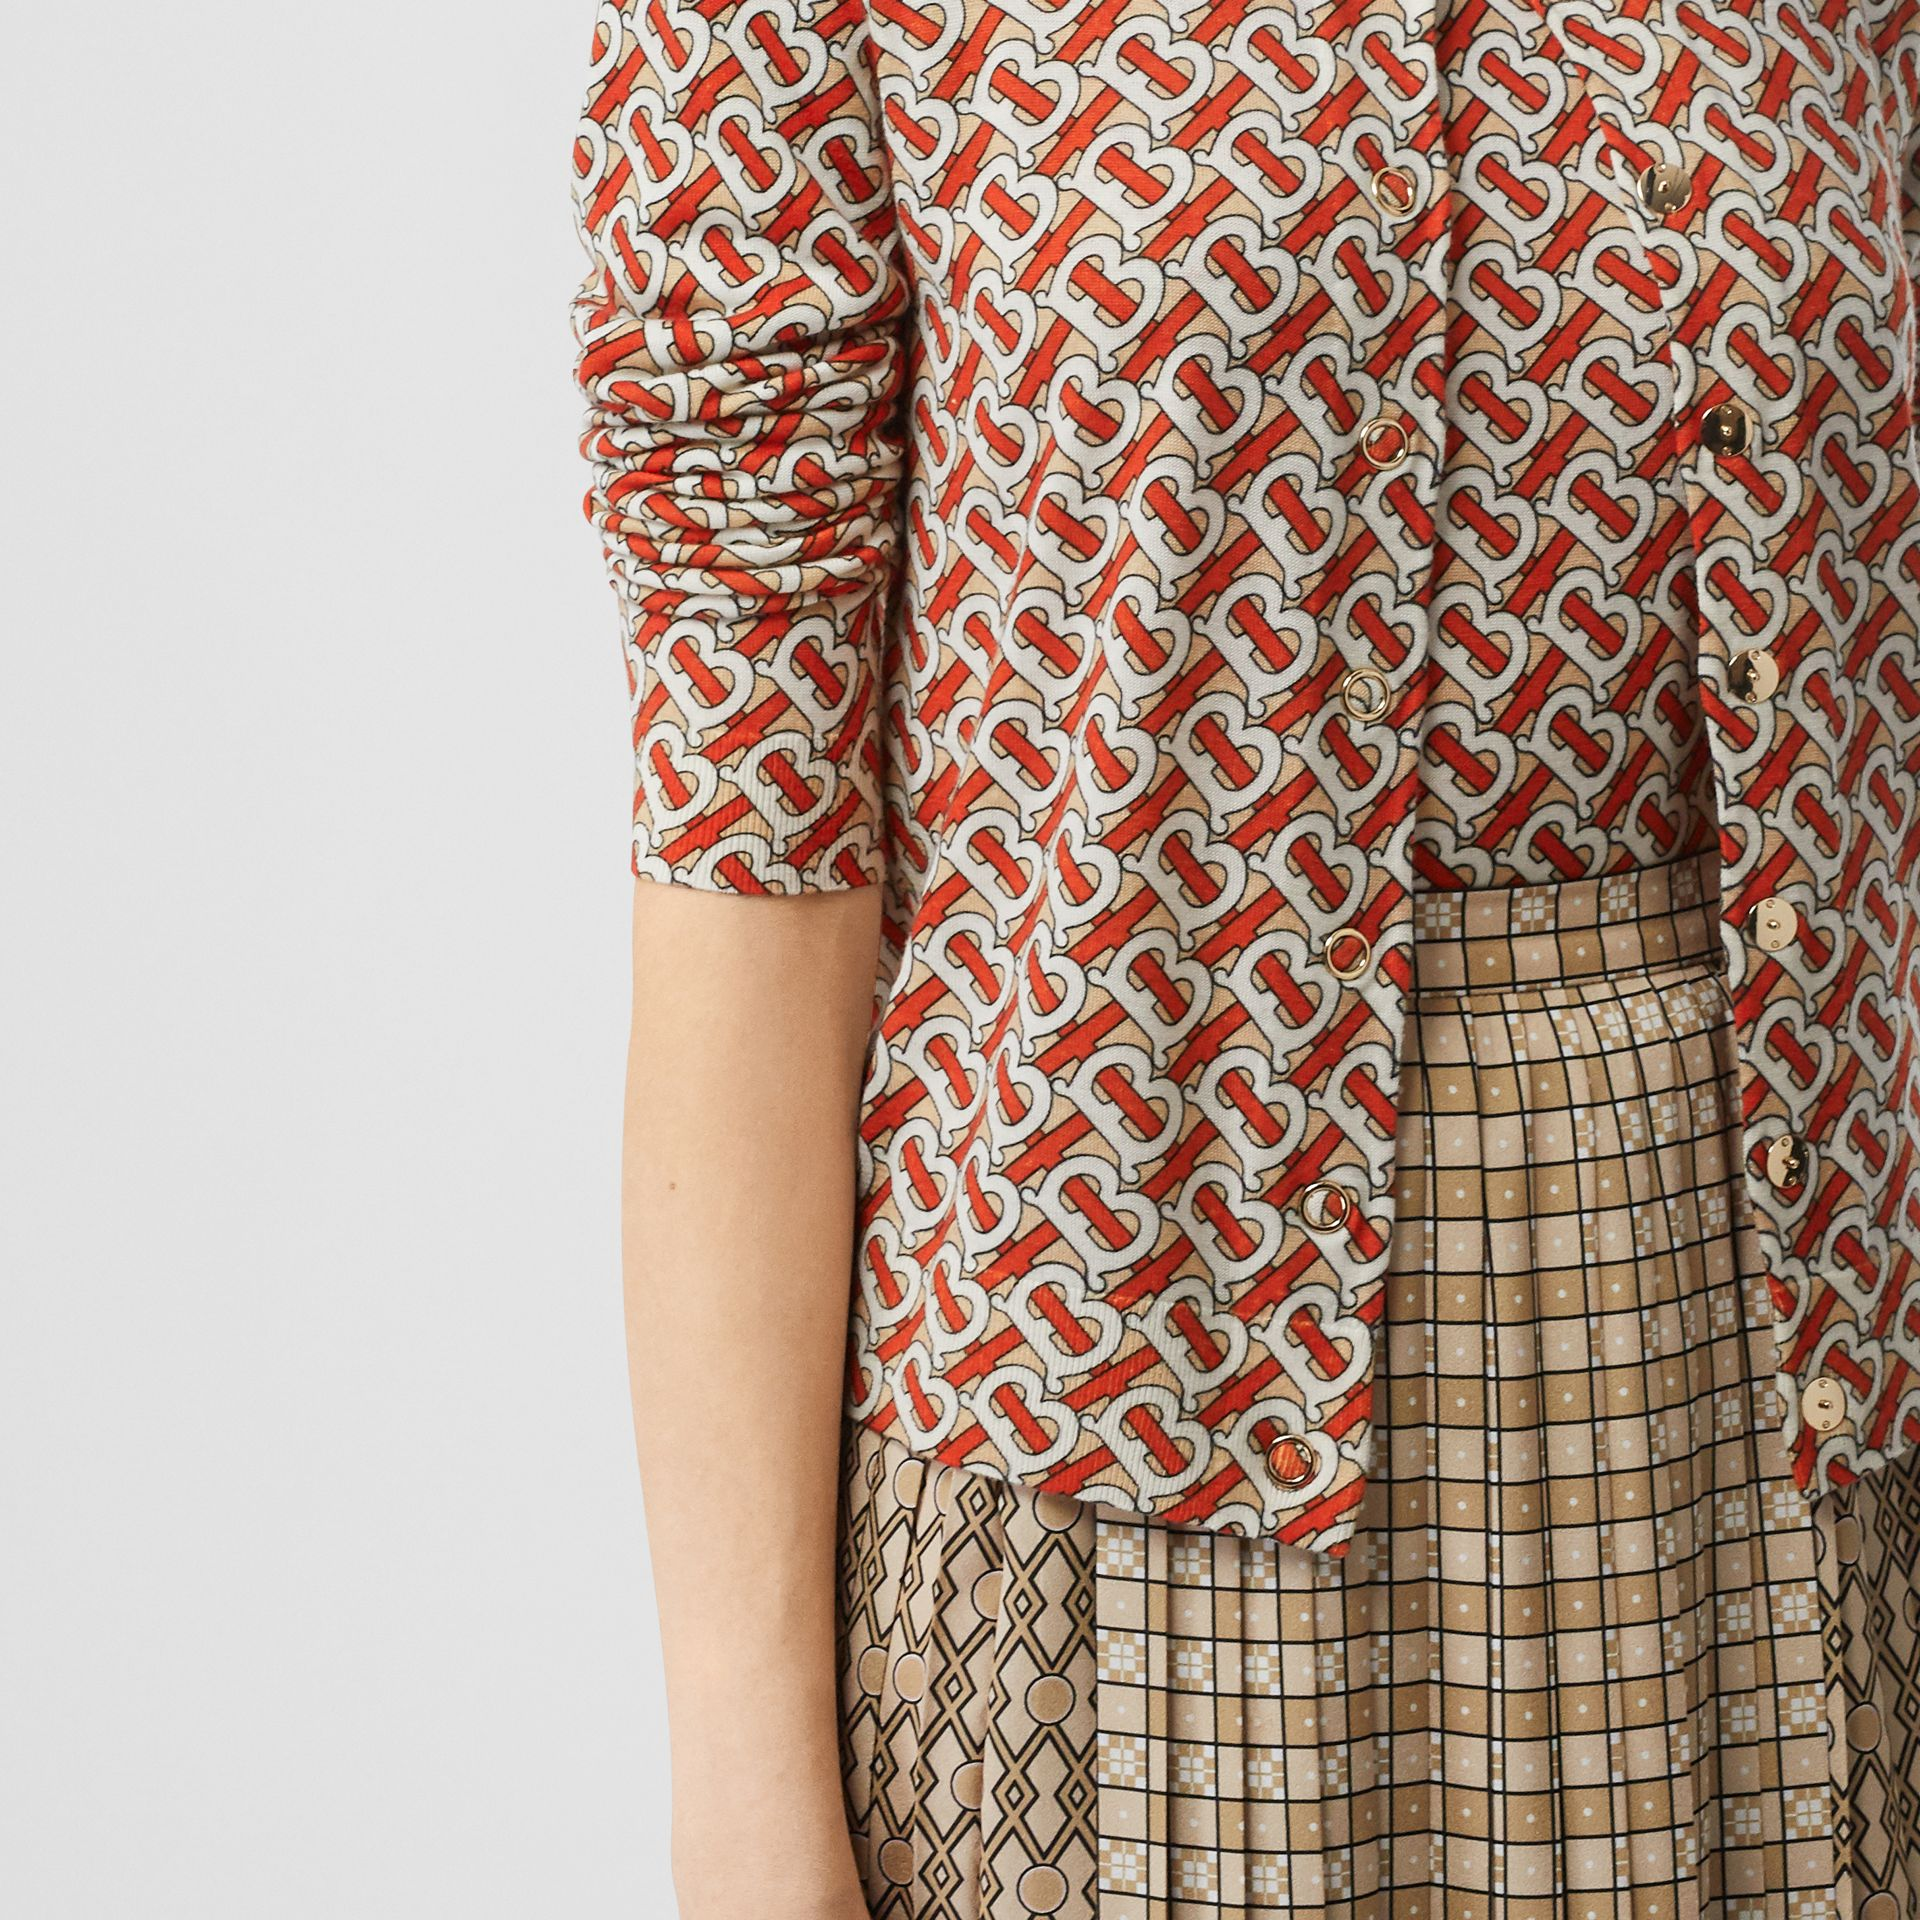 Monogram Print Merino Wool Cardigan in Vermillion - Women | Burberry United Kingdom - gallery image 4